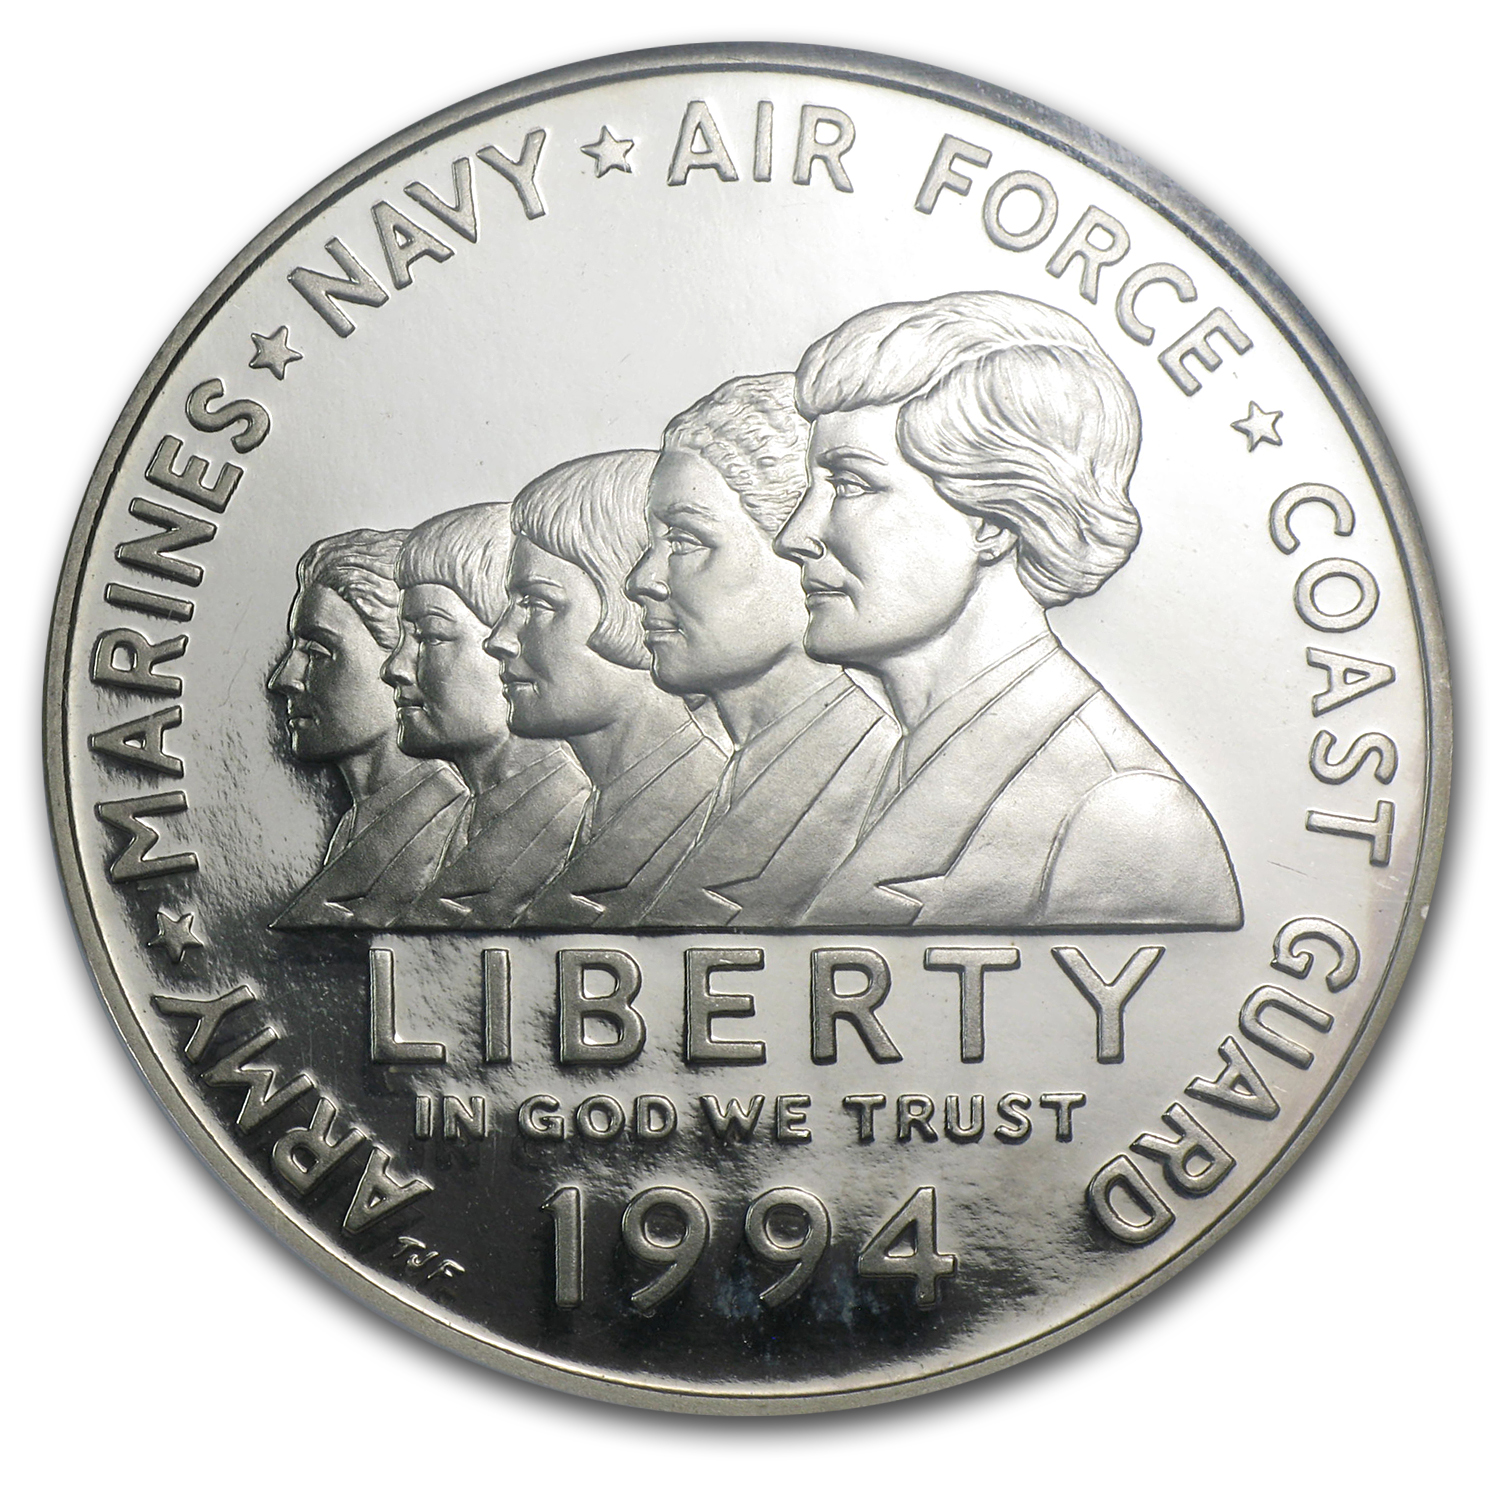 1994-P Women in Military $1 Silver Commem PF-69 NGC